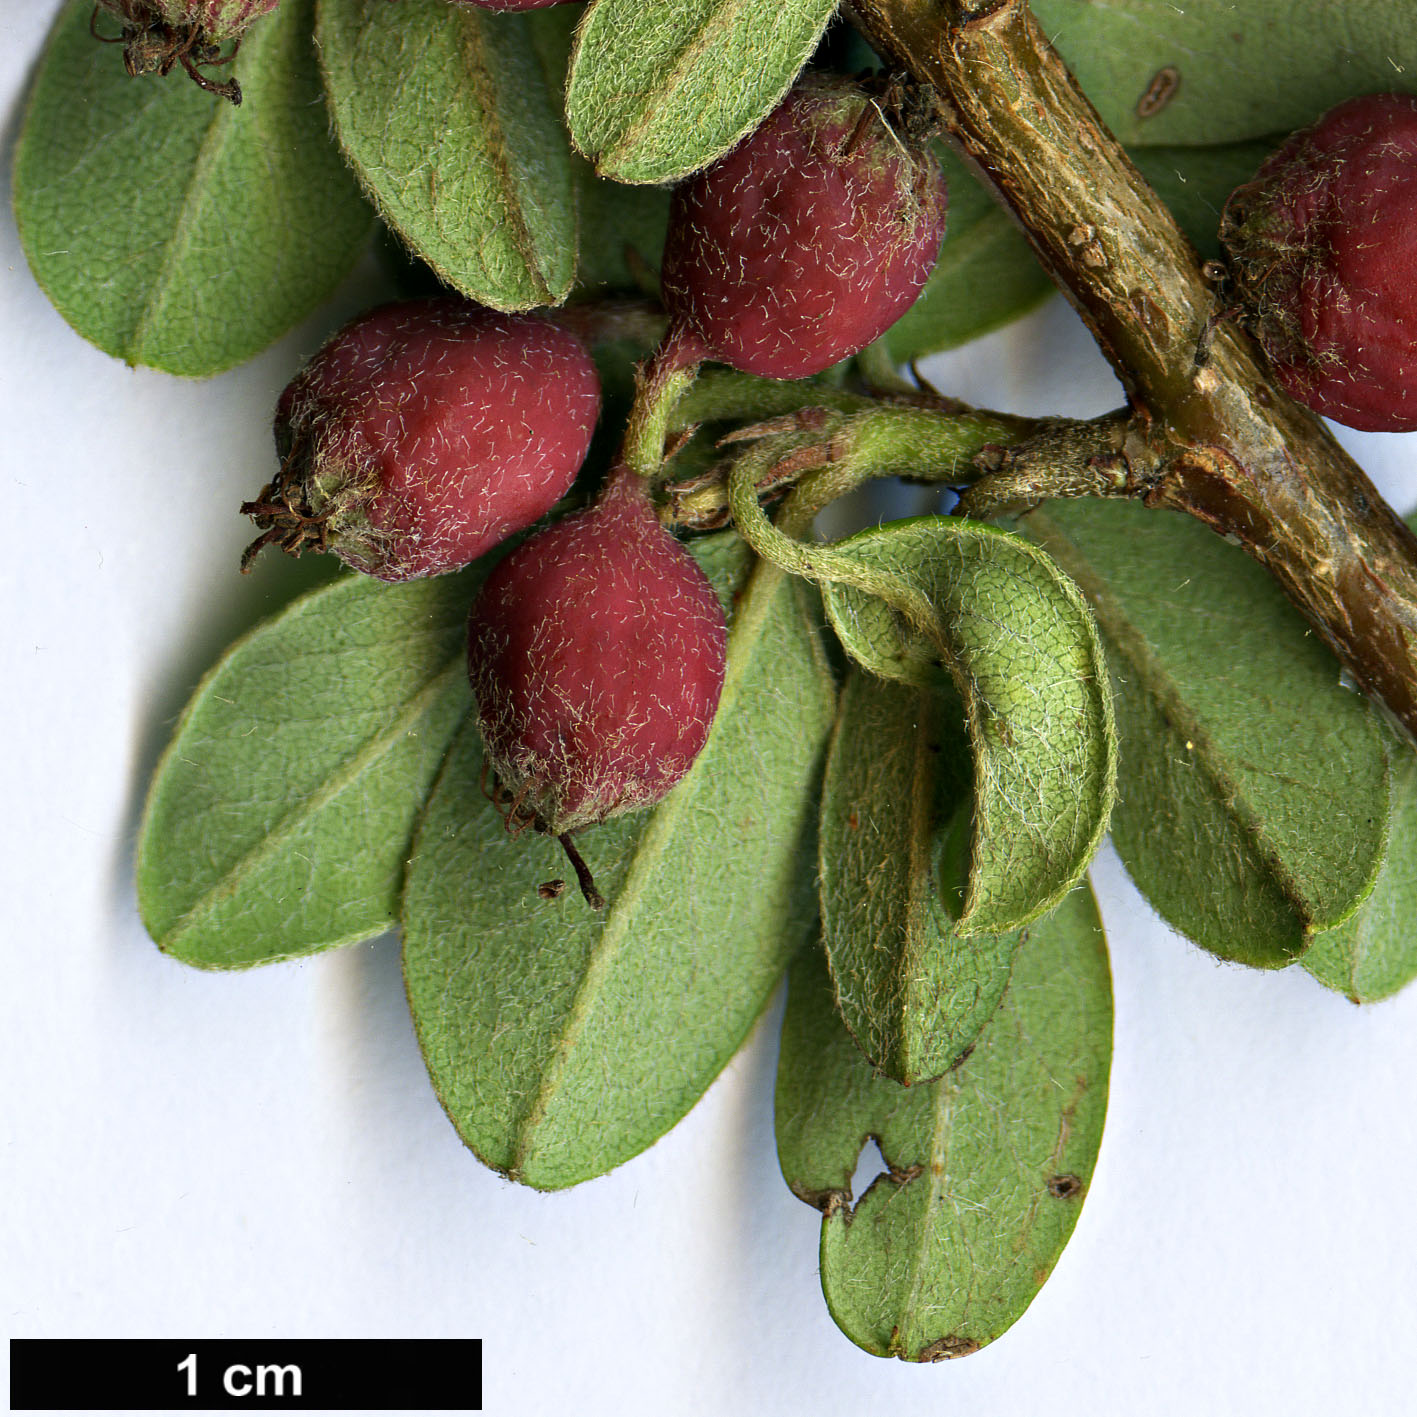 High resolution image: Family: Rosaceae - Genus: Cotoneaster - Taxon: buxifolius